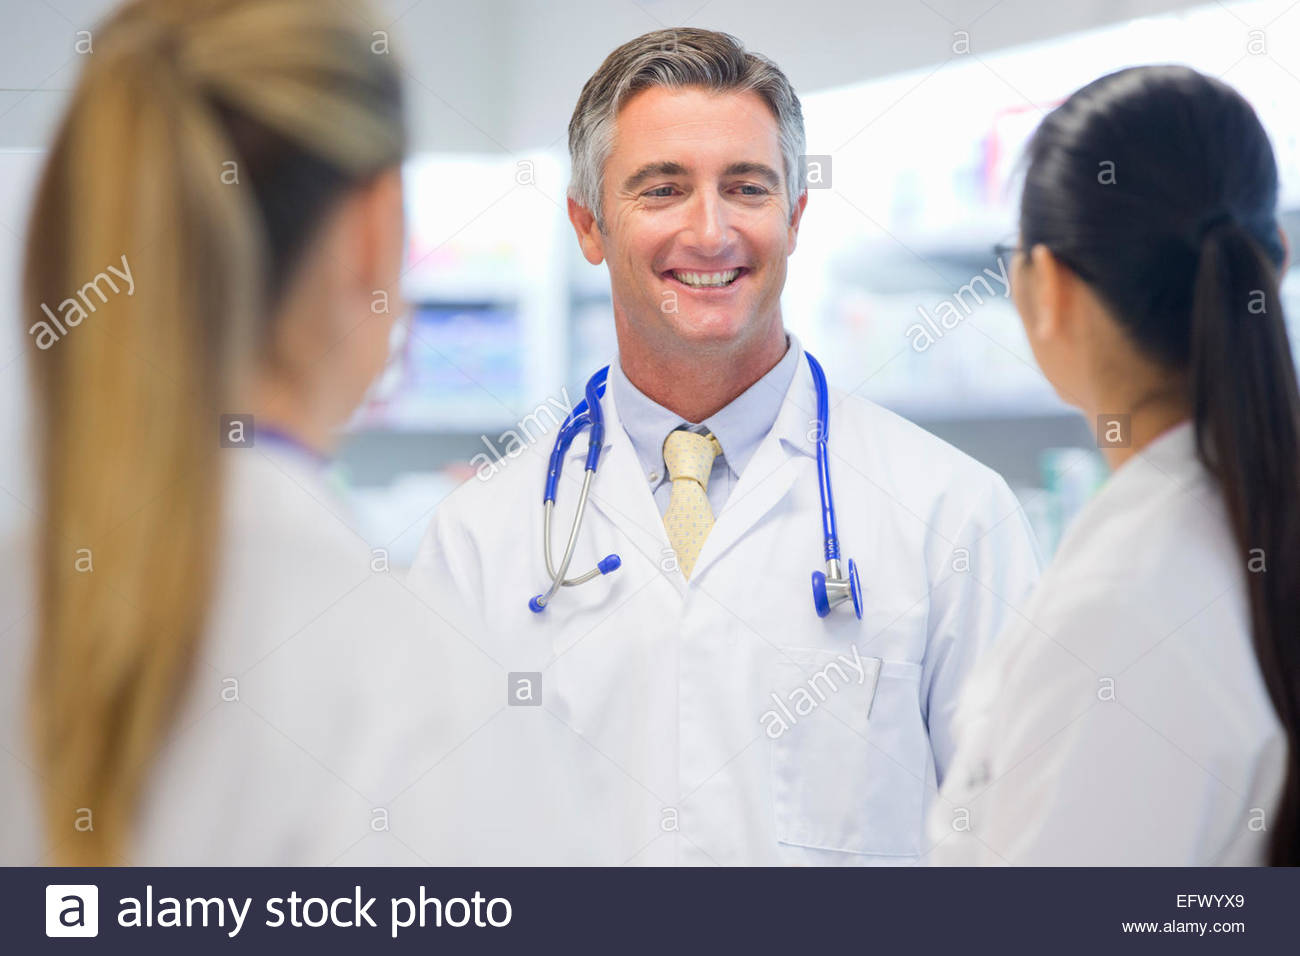 Médecin, wearing stethoscope, souriant à ses collègues Photo Stock